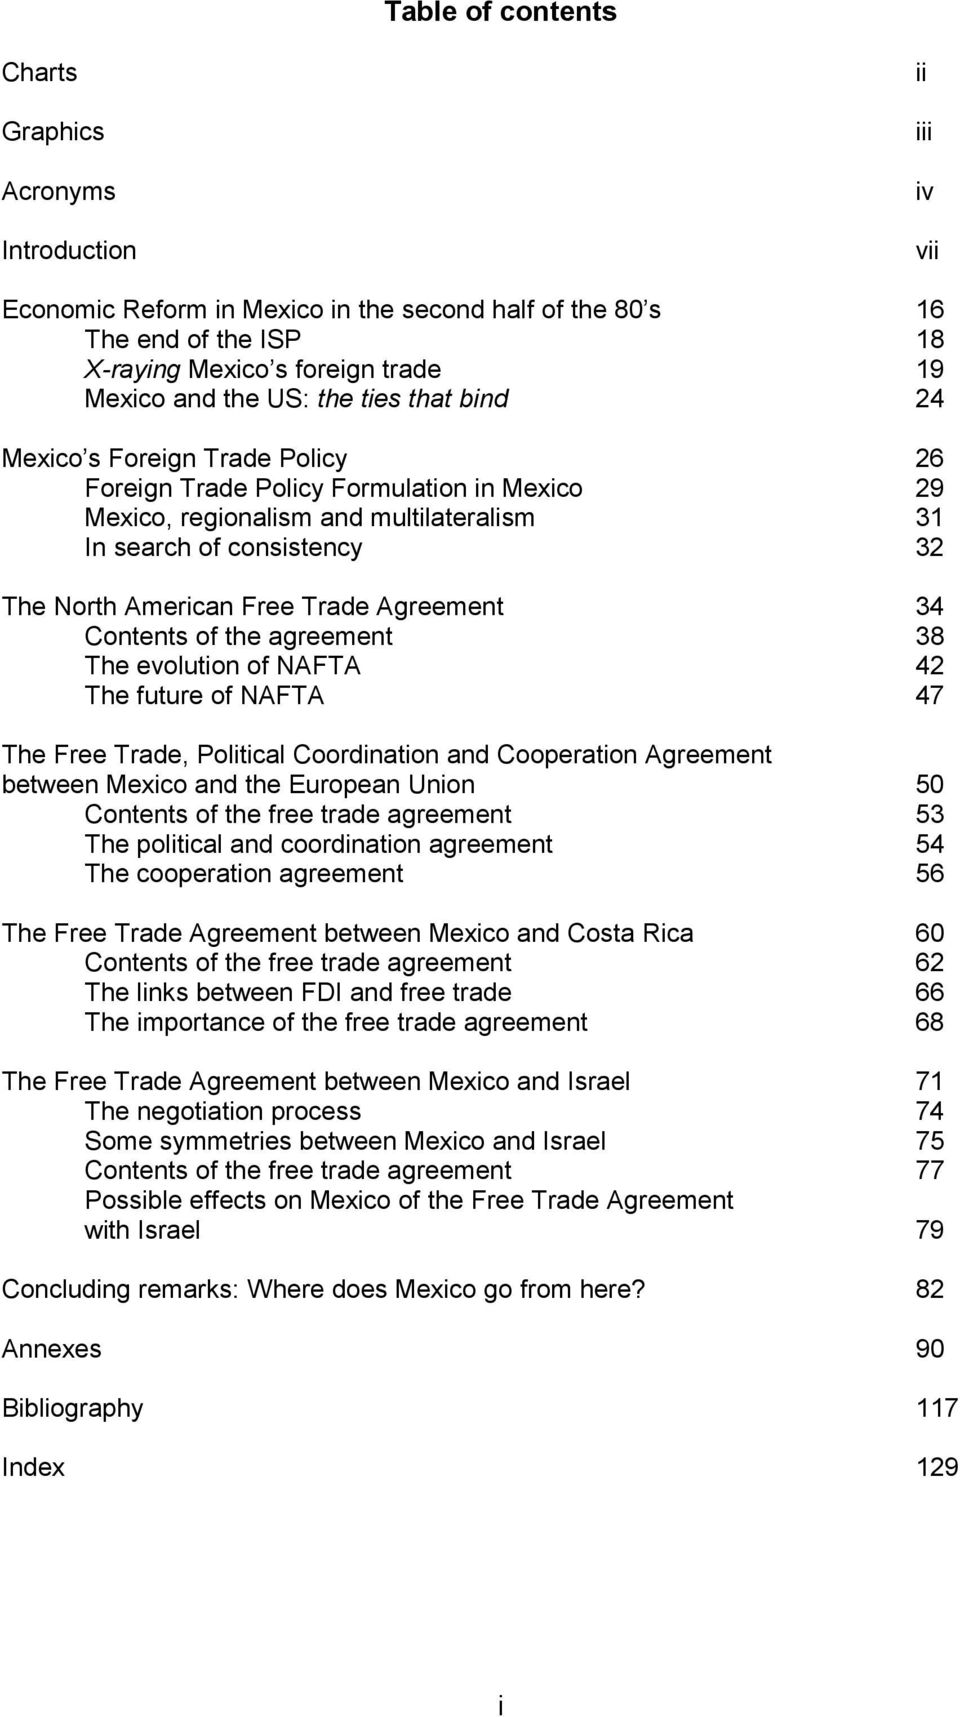 Free Trade Agreement 34 Contents of the agreement 38 The evolution of NAFTA 42 The future of NAFTA 47 The Free Trade, Political Coordination and Cooperation Agreement between Mexico and the European